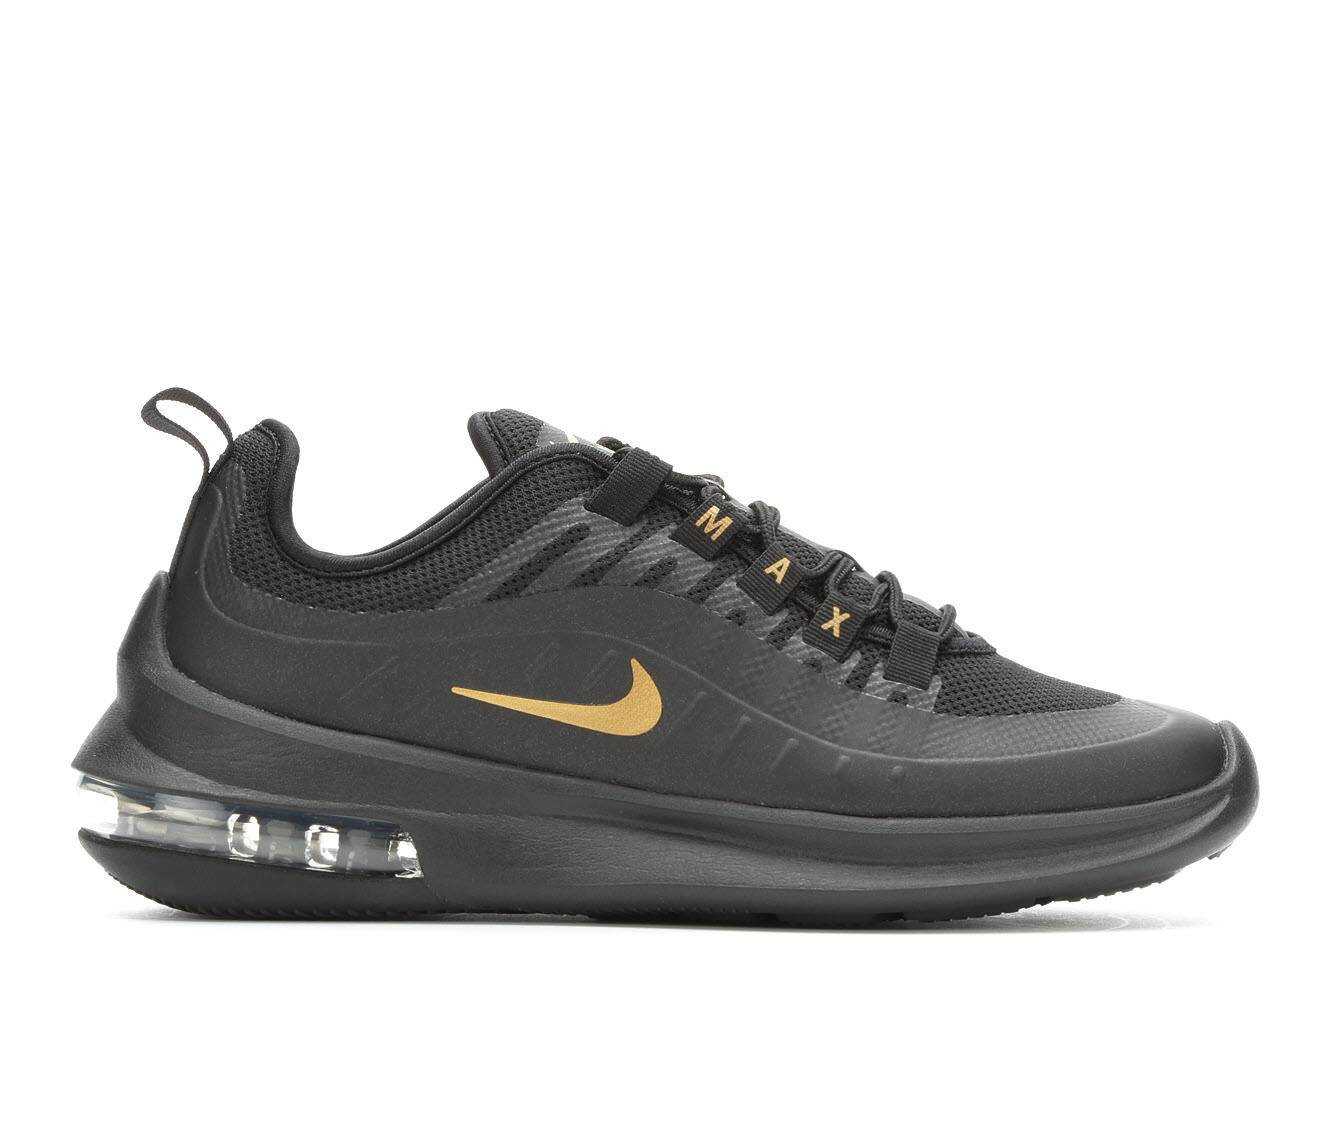 Women's Nike Air Max Axis Running Shoes Black/Met Gold